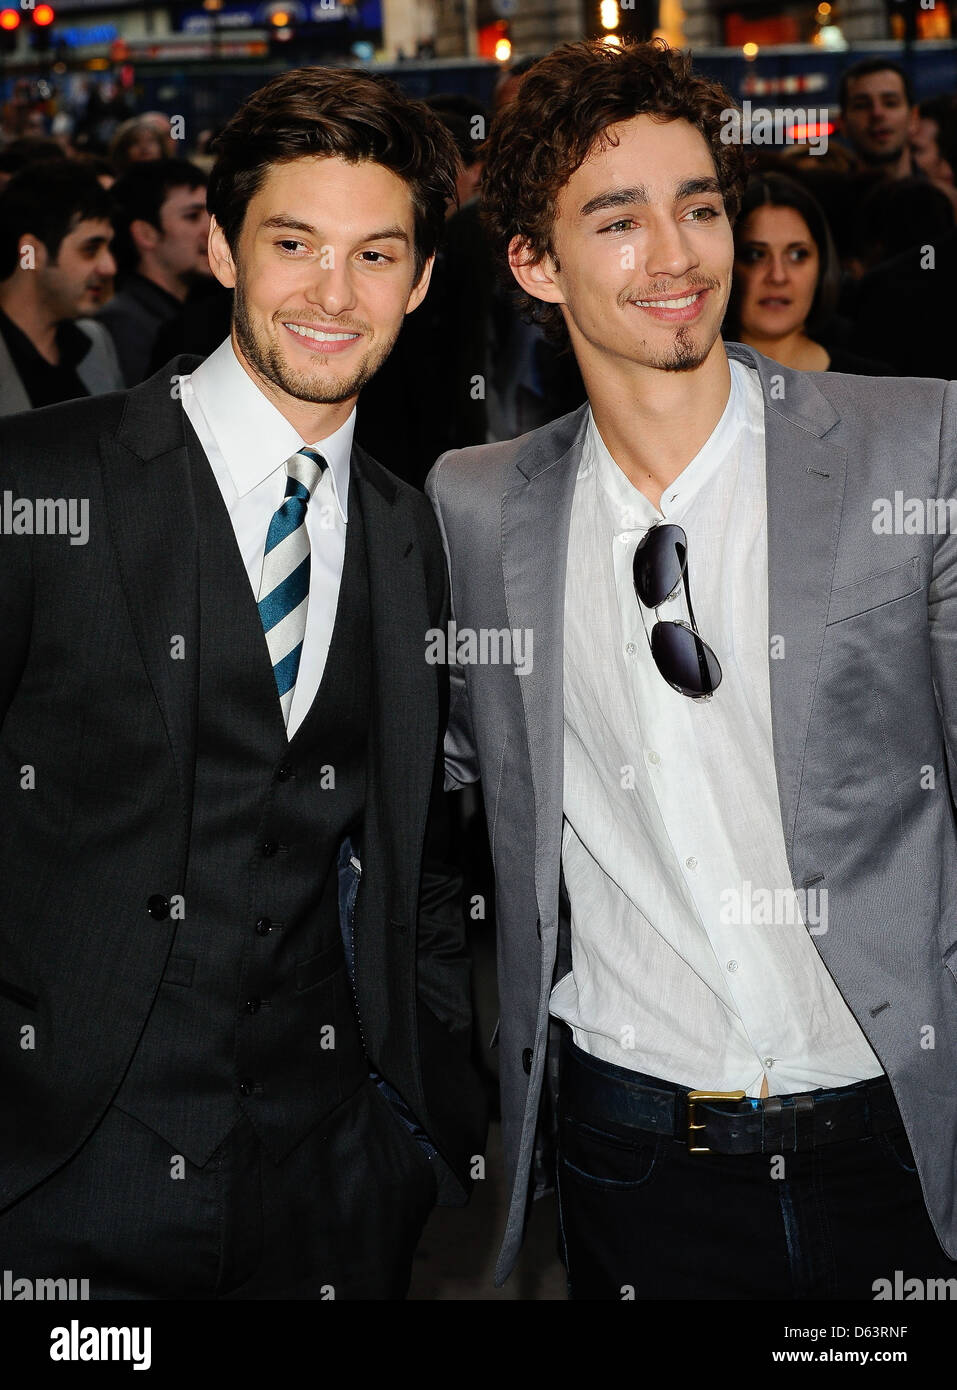 Ben Barnes And Robert Sheehan Uk Premiere Of Killing Bono Held At The Apollo West End Arrivals London England